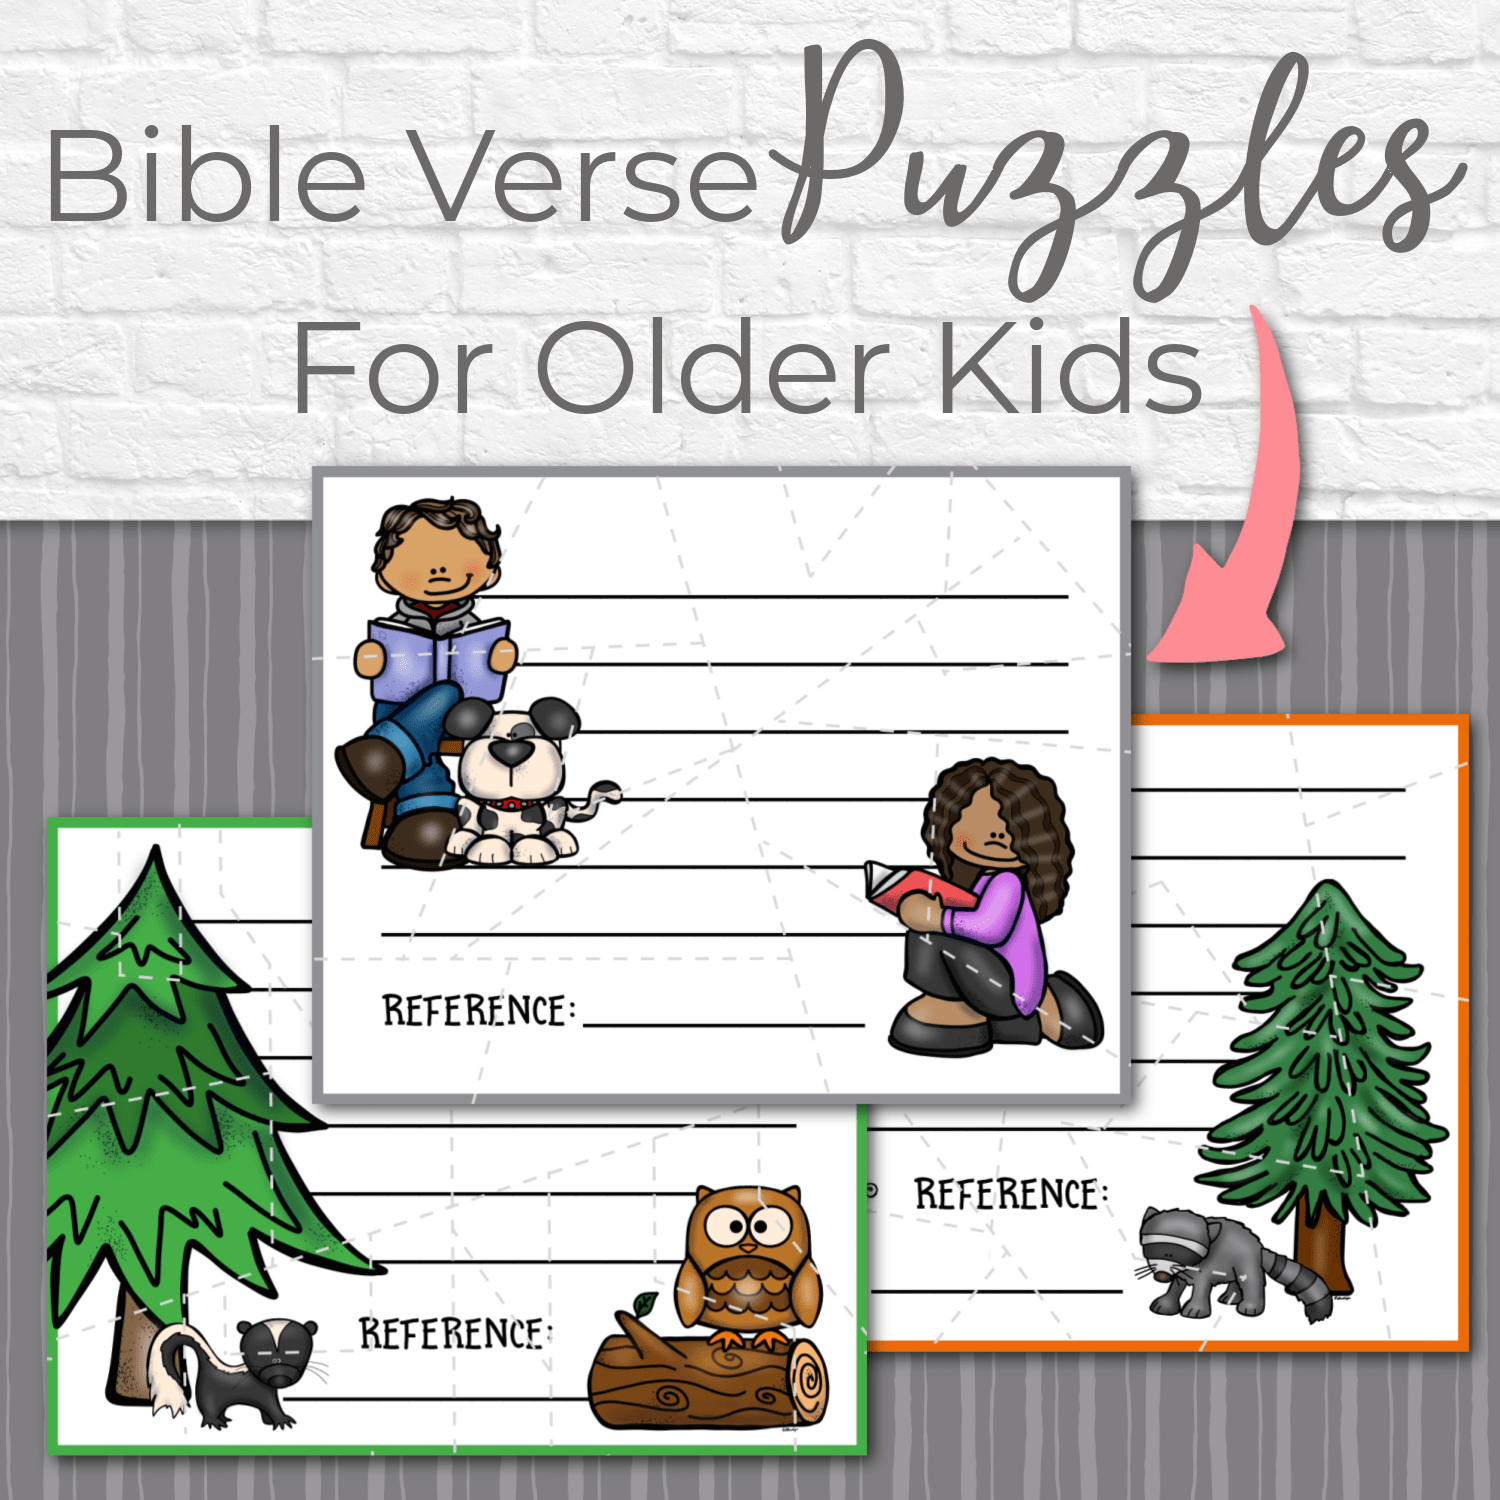 I love these Bible verse puzzles for older kids - They are a great way for kids to work on a memory verse. (And, they're great to have on hand for a last minute class project!)